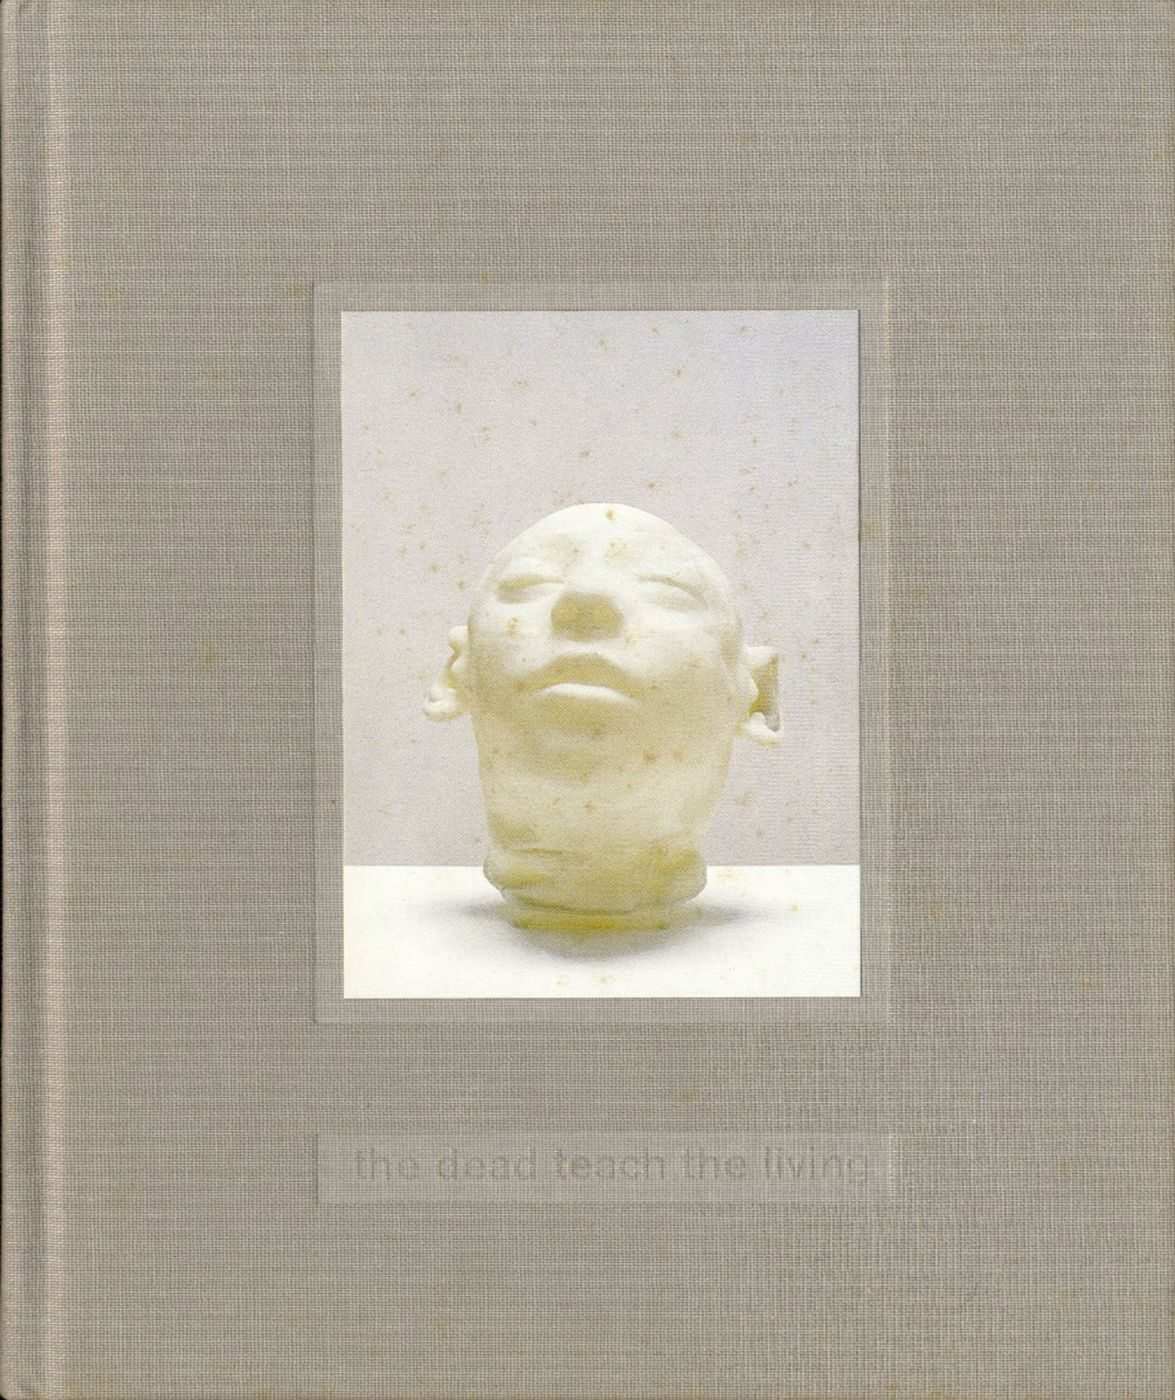 Christine Borland: The Dead Teach the Living - Selected Works 1990-1999